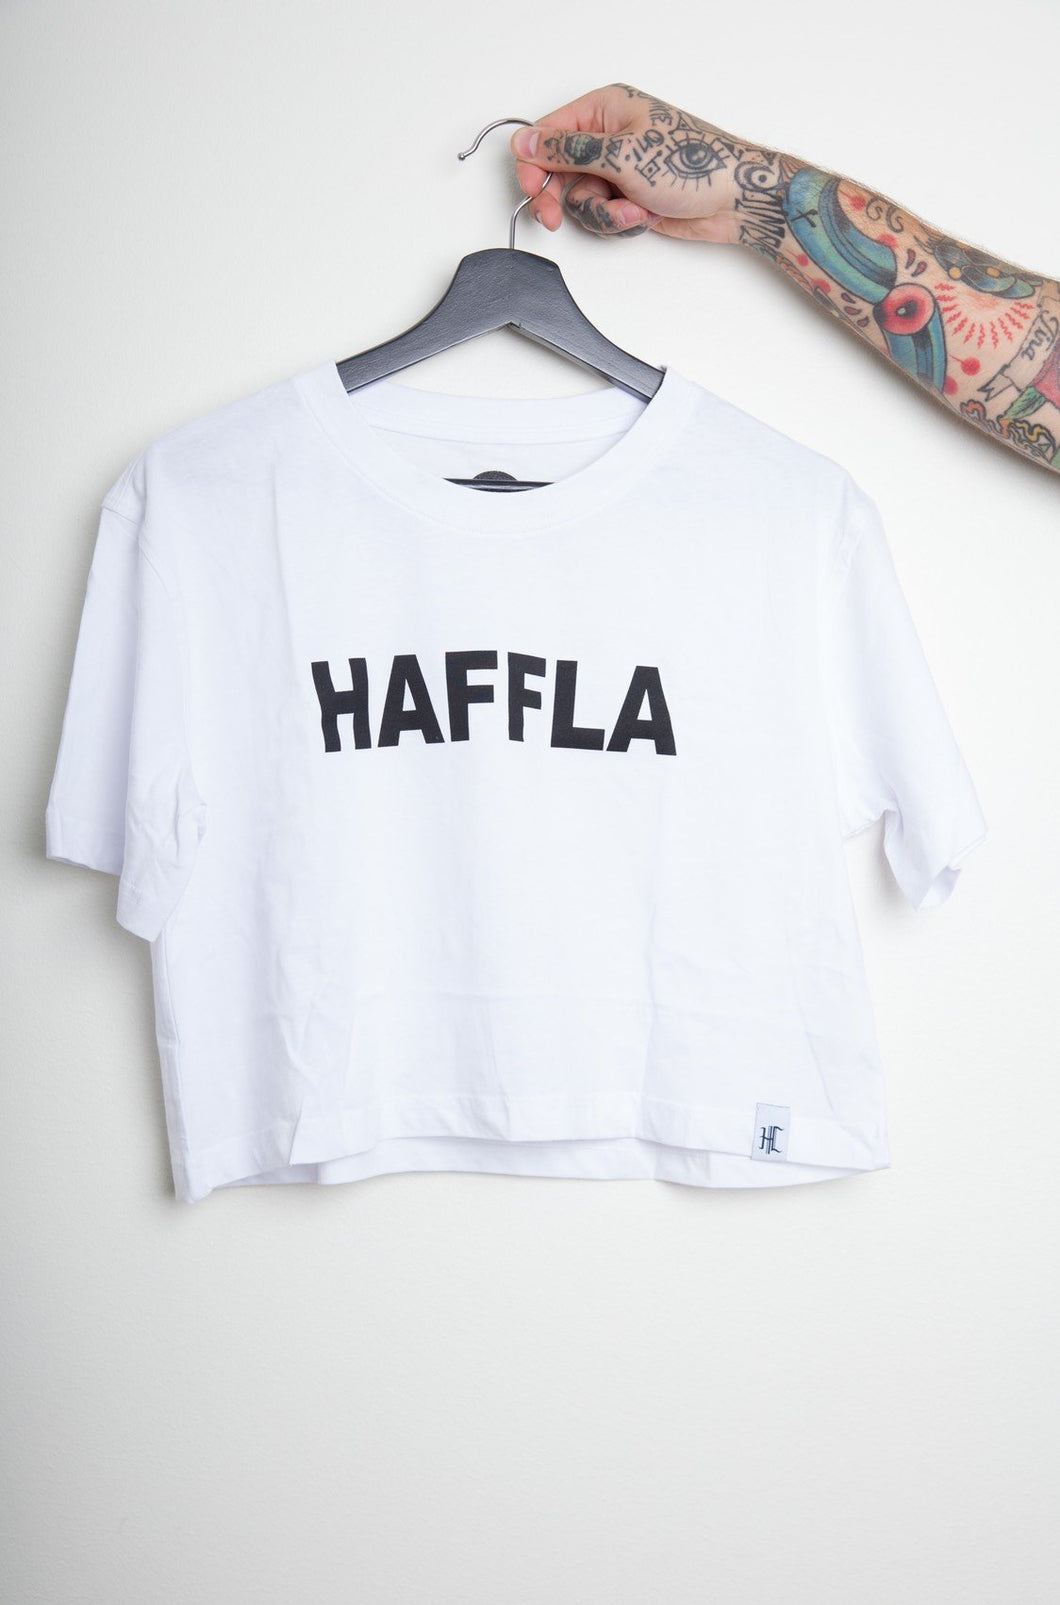 Haffla crop top